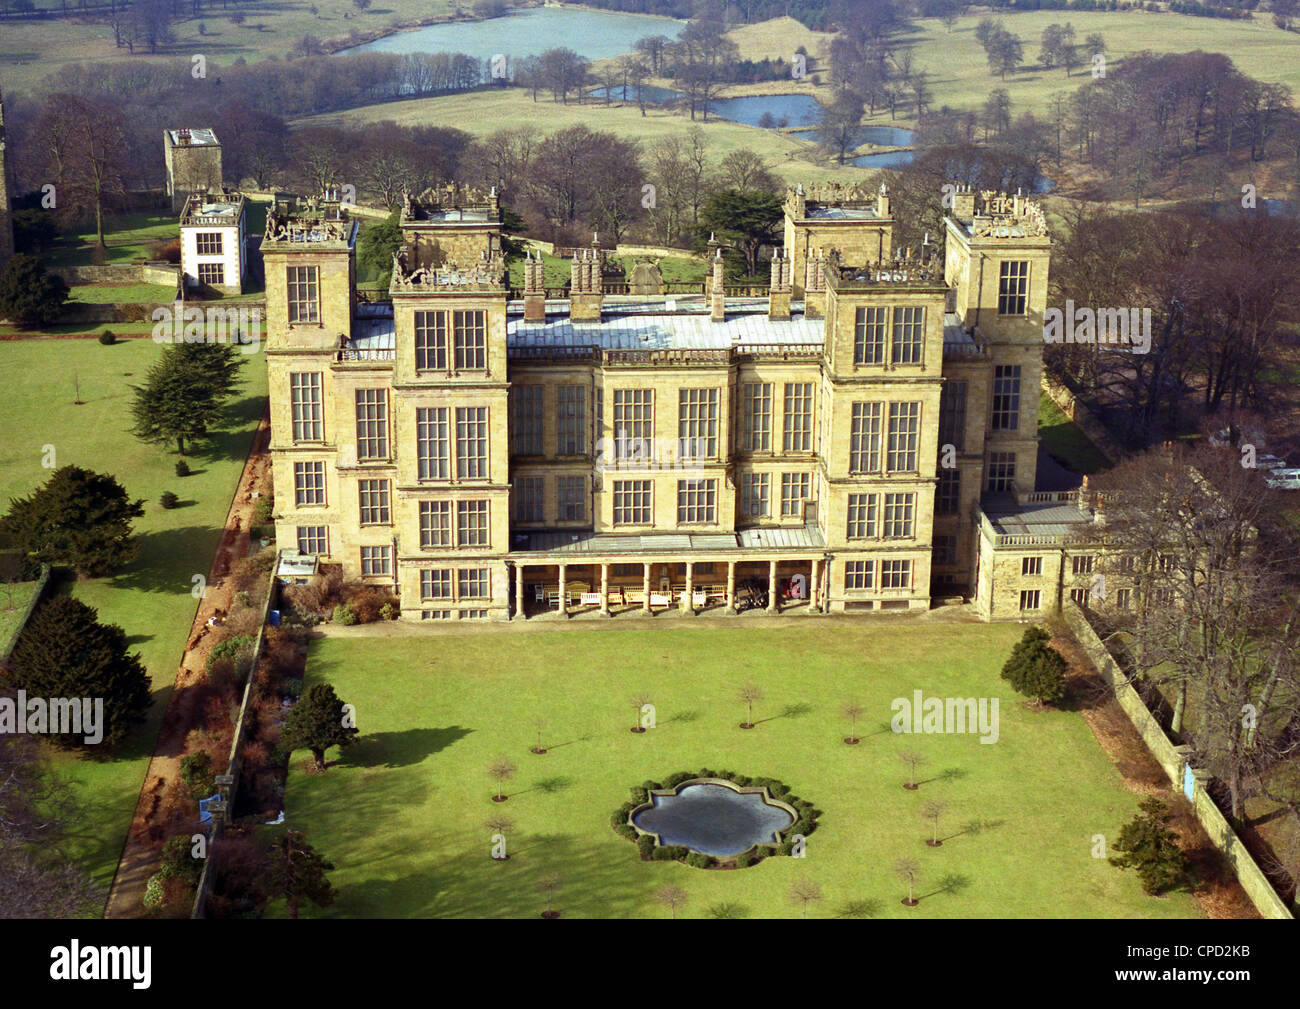 historic aerial view of Hardwick Hall, the Elizabethan masterpiece mansion near Chesterfield in Derbyshire, taken - Stock Image